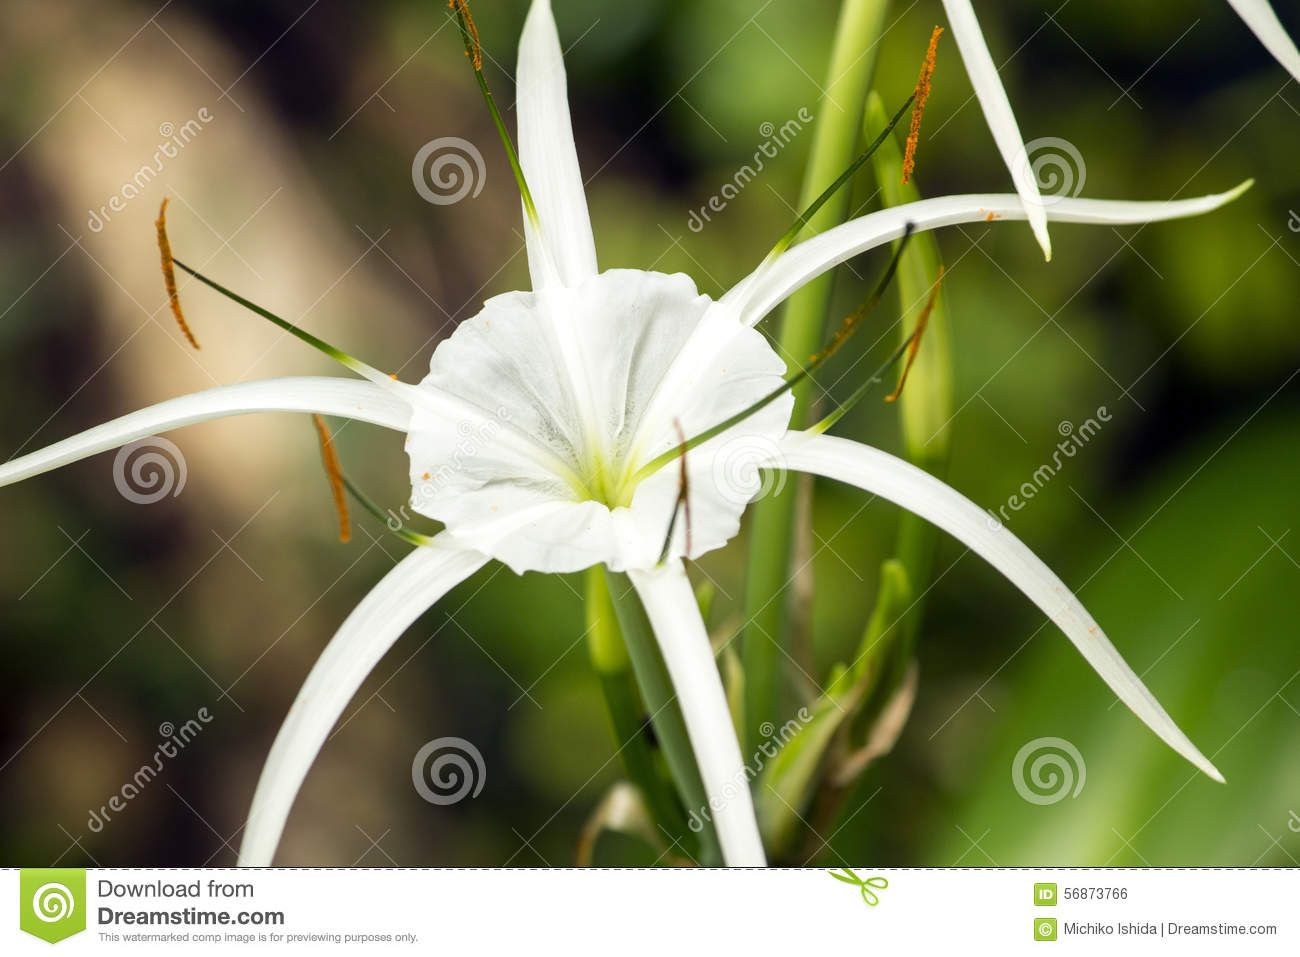 White lily like flower spider lily has long skinny petals 56873766 white lily like flower spider lily has long izmirmasajfo